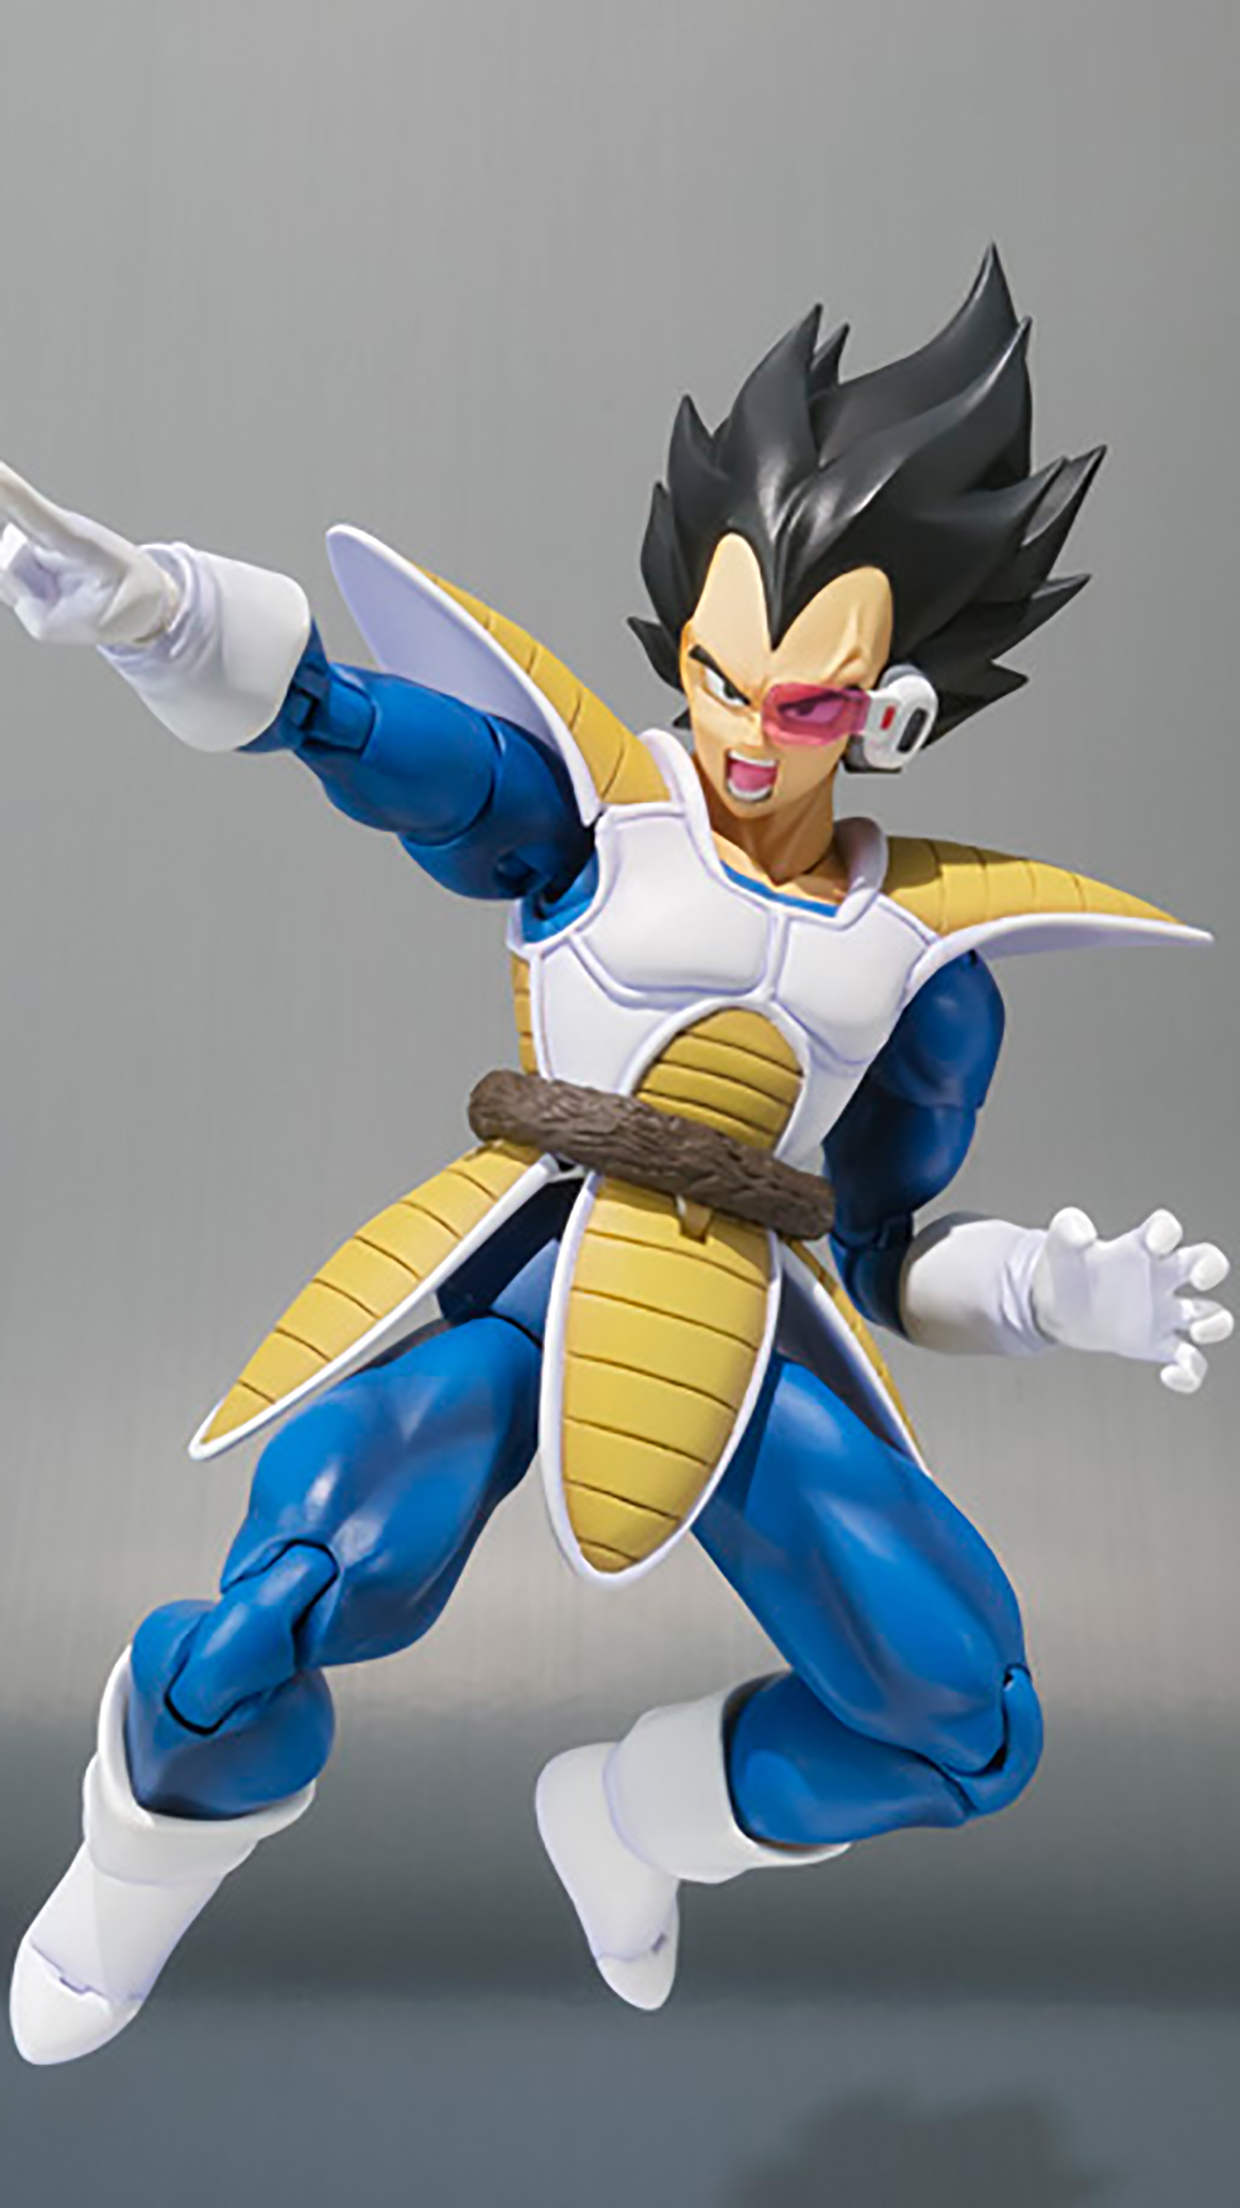 Special Vegeta Pumping 3Wallpapers iPhone Parallax Special Vegeta : Pumping